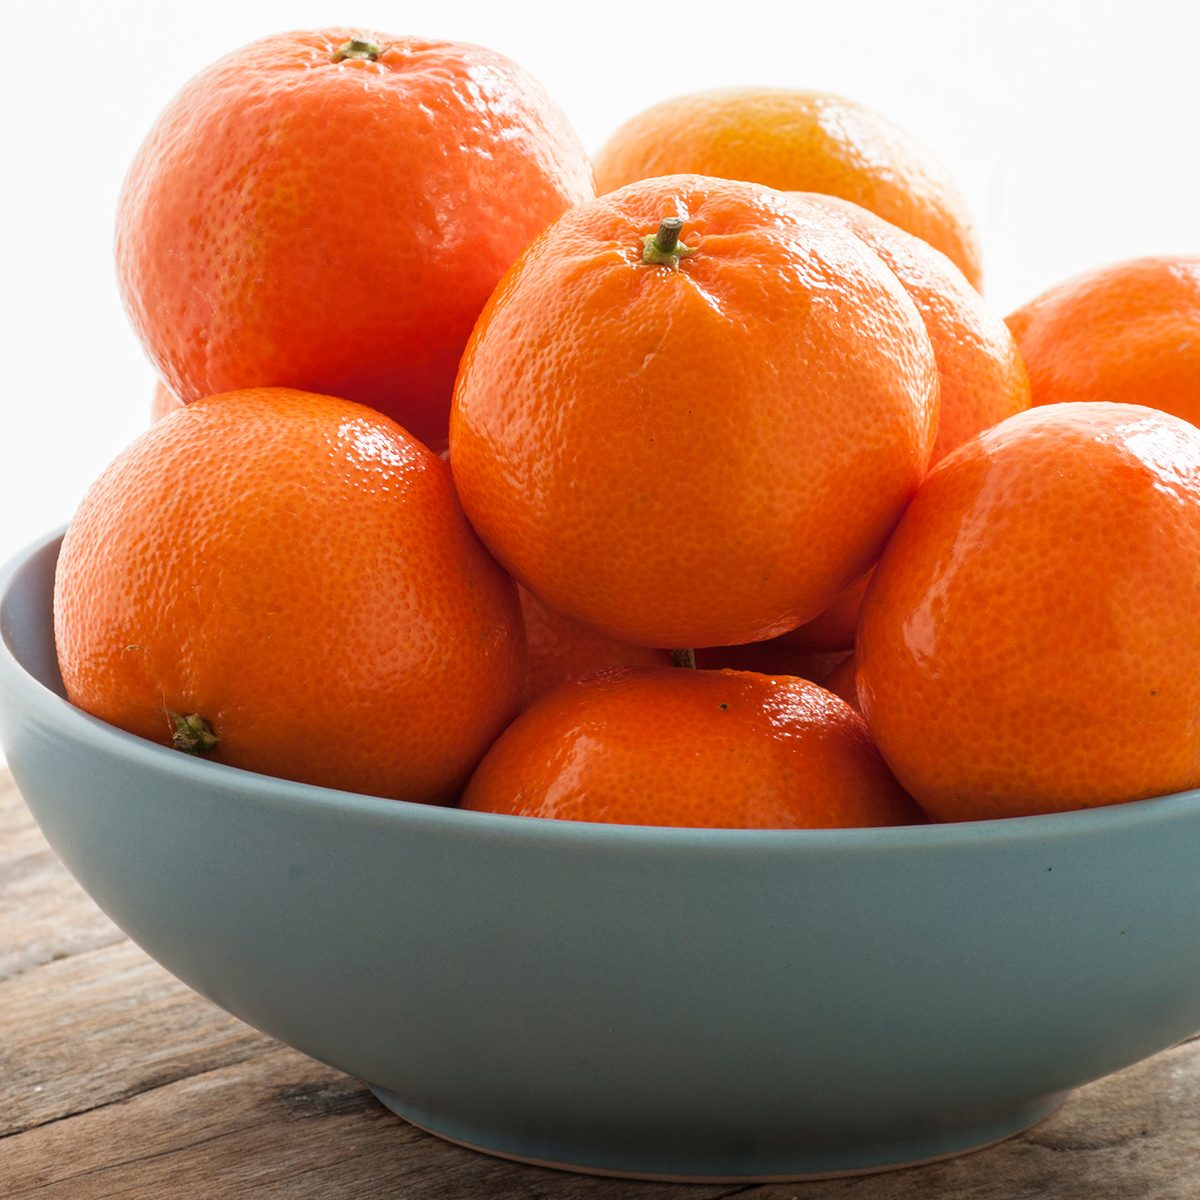 Close-Up Of Oranges In Bowl On Table Against White Background